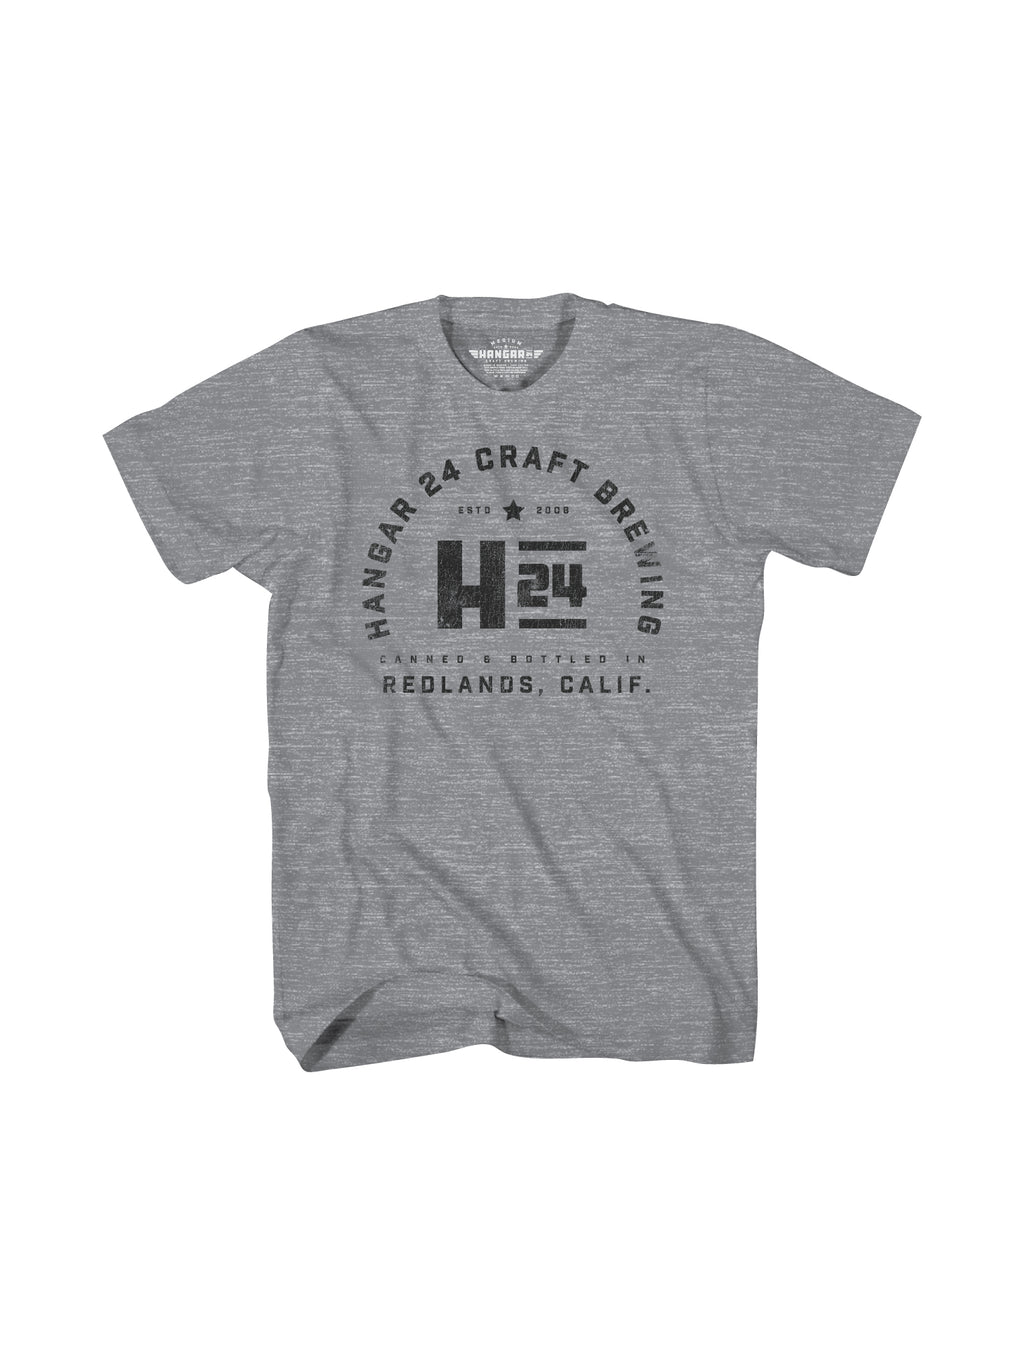 HANGAR REDLANDS MENS TEE- GREY - Anderson Bros Design and Supply